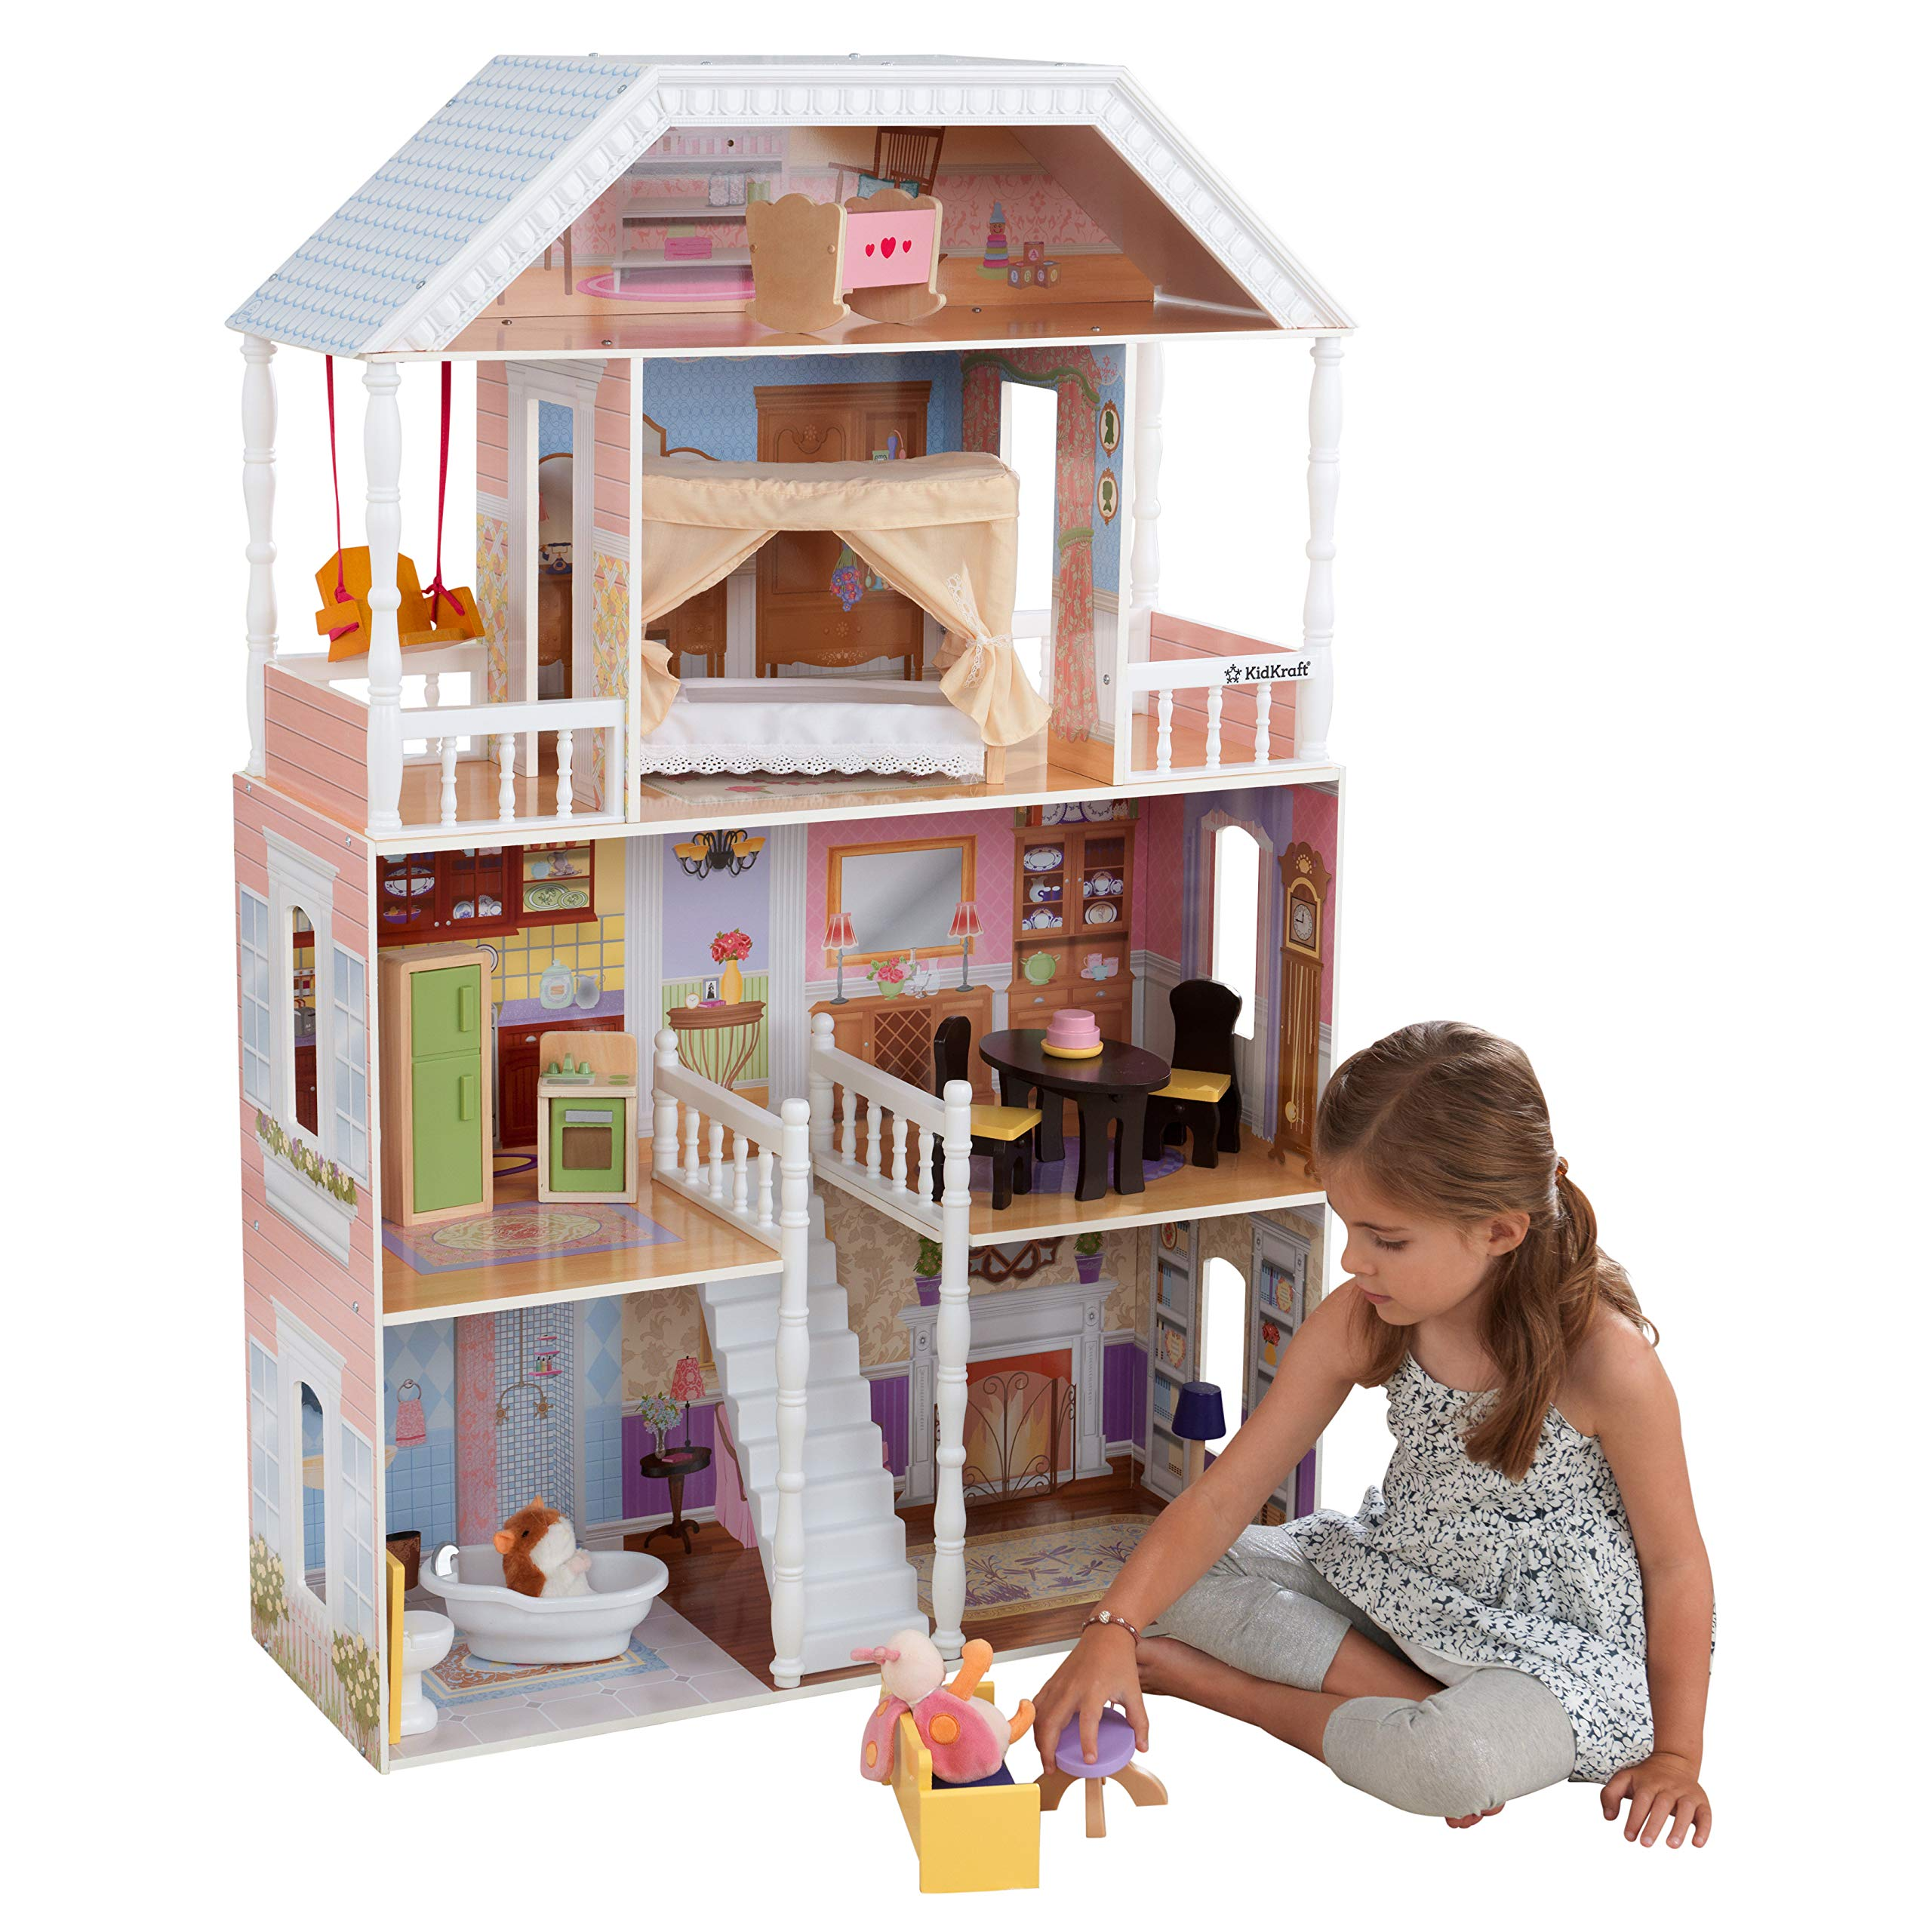 KidKraft Savannah Wooden Dollhouse, Over 4 Feet Tall with Porch Swing and 14 Accessories ,Gift for Ages 3+